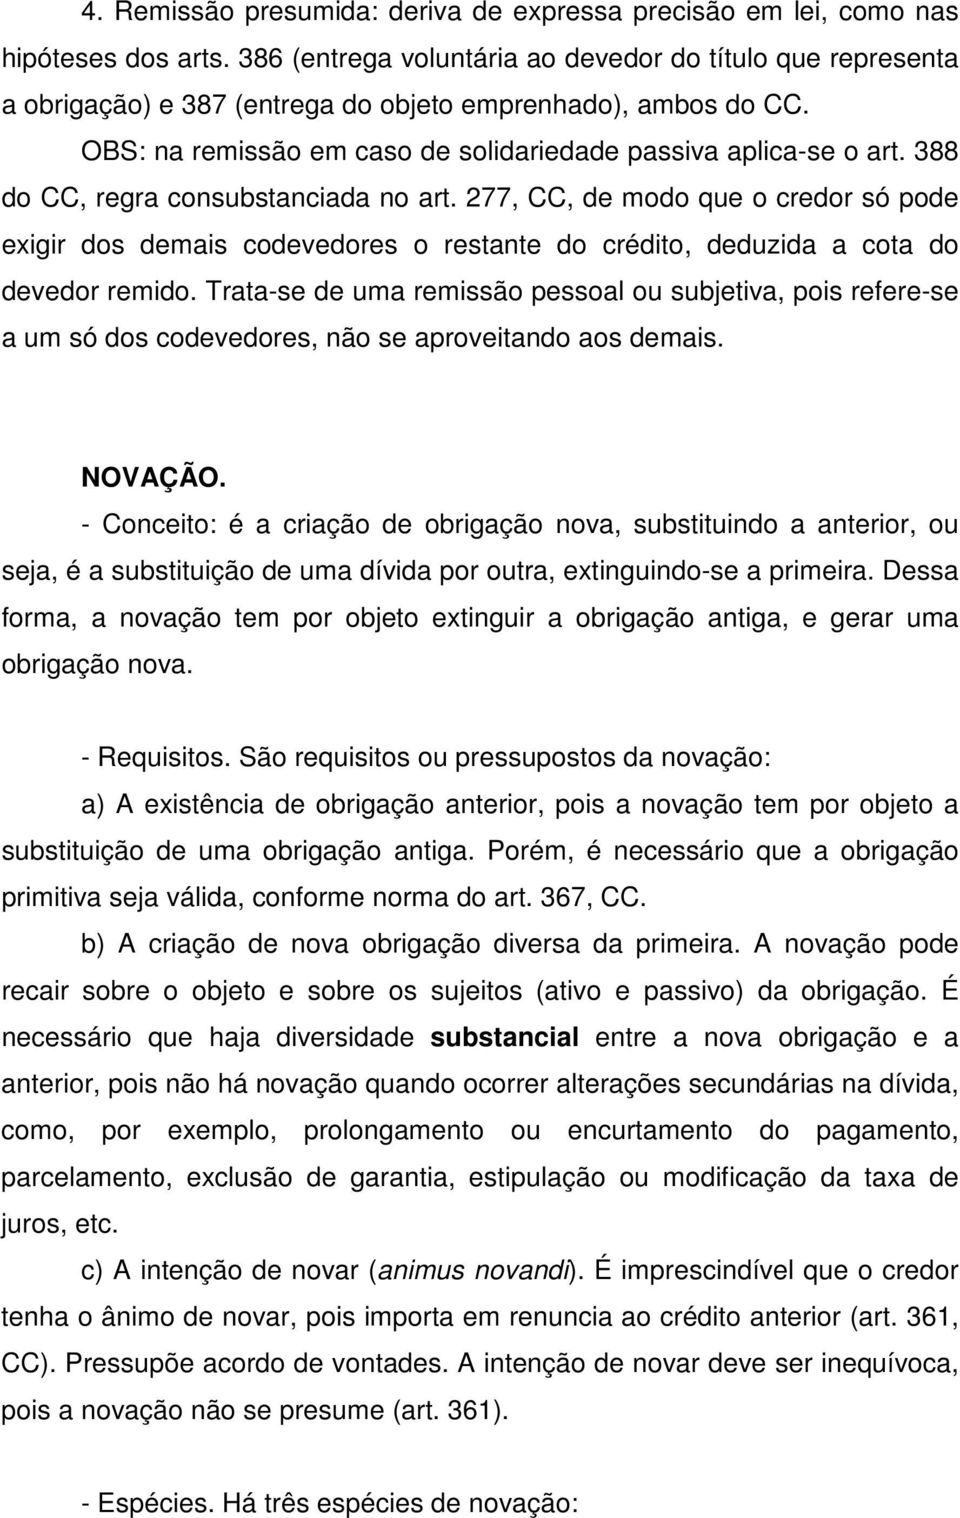 388 do CC, regra consubstanciada no art. 277, CC, de modo que o credor só pode exigir dos demais codevedores o restante do crédito, deduzida a cota do devedor remido.